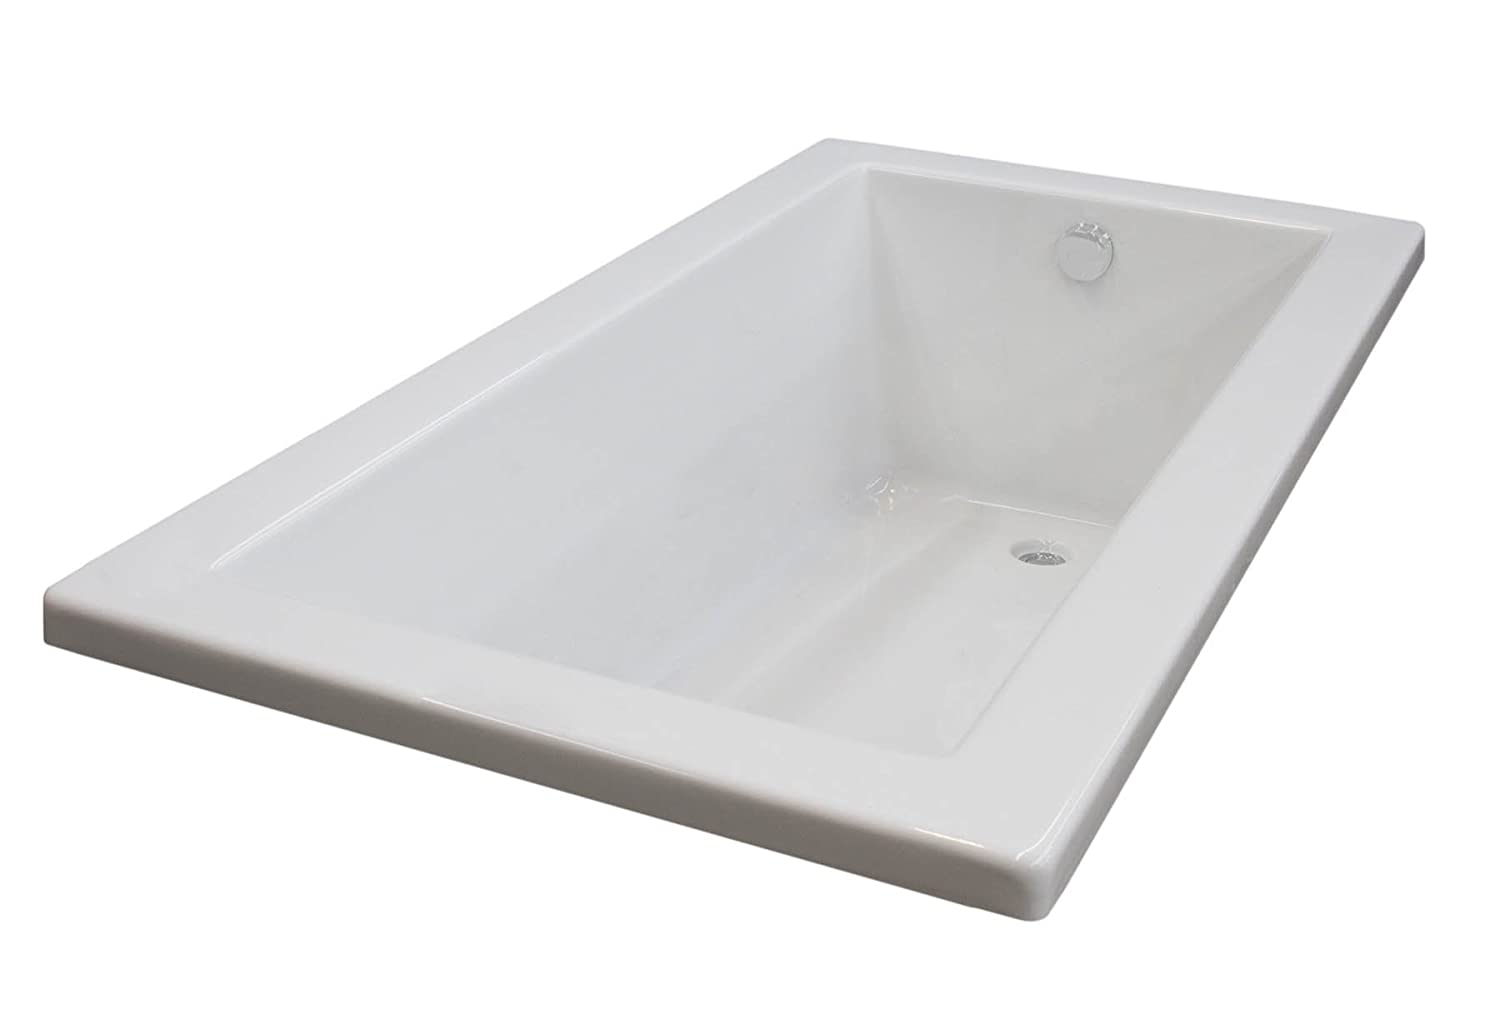 Bronzino 32 x 72 Rectangular Soaking Drop-In Bathtub - Soaker Tub ...